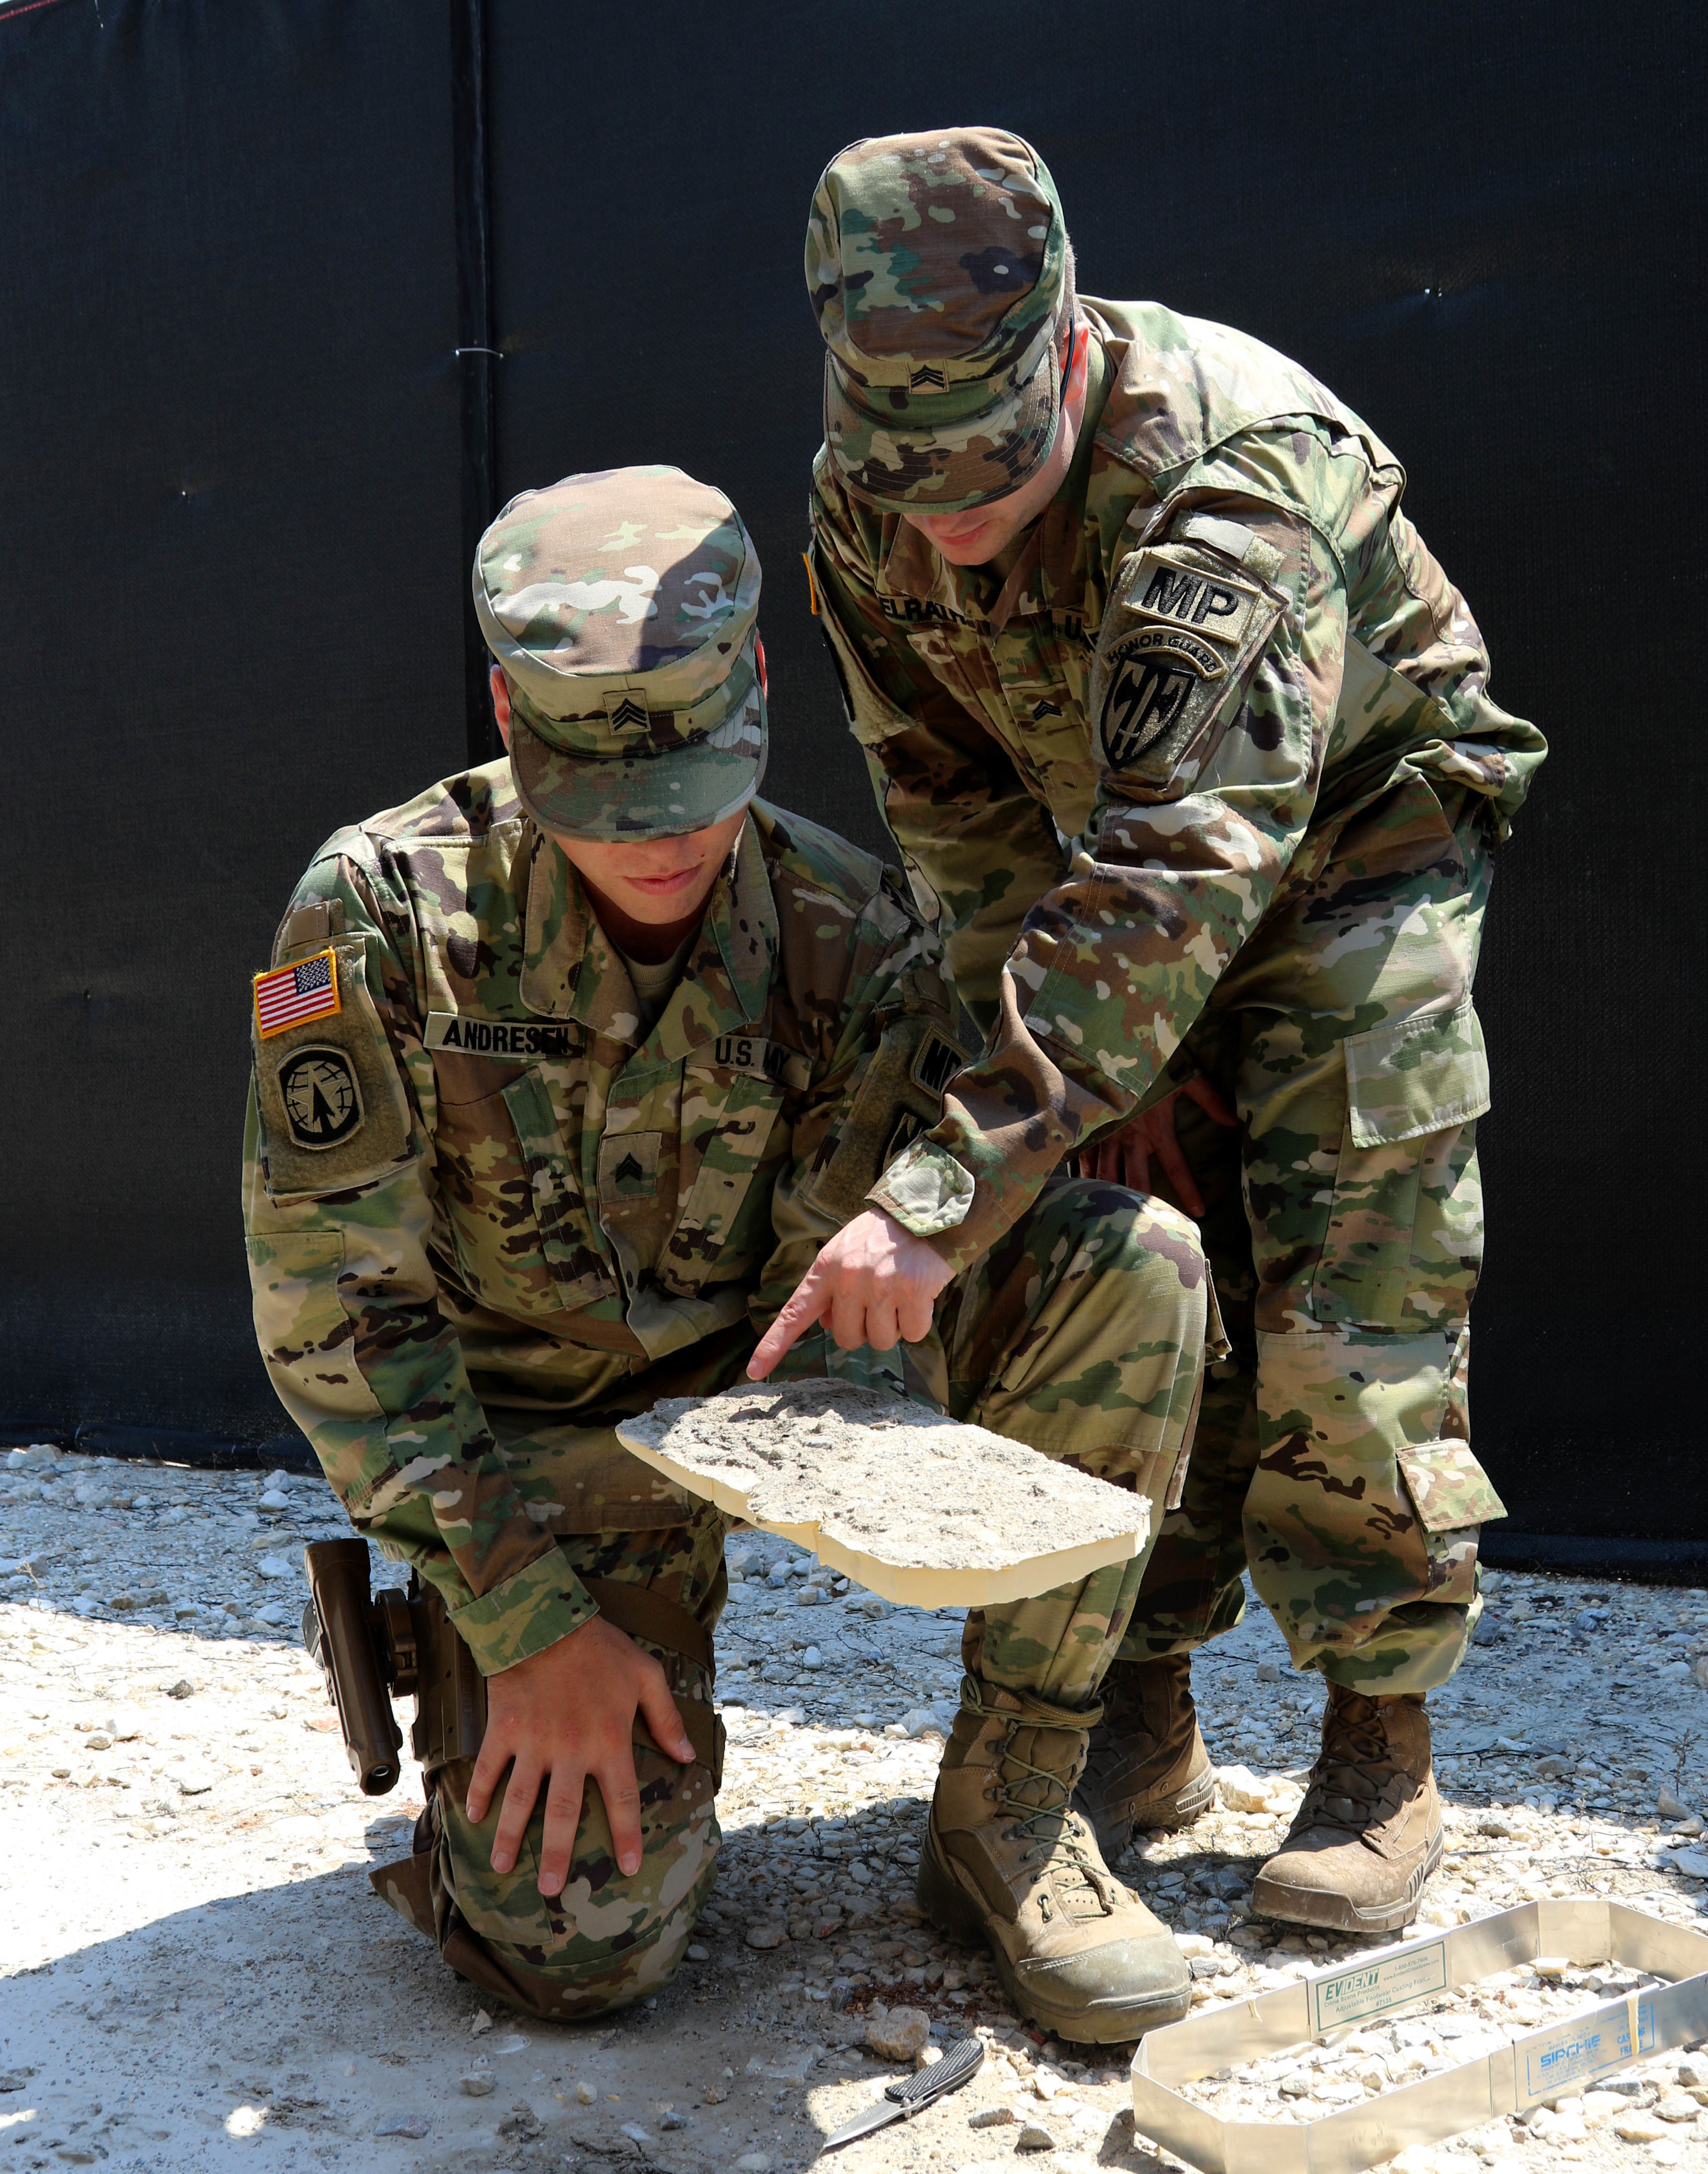 (Left-Right) Sgt. Michael Andresen and Sgt. Charles McElrath, both military policemen assigned to Multinational Battle Group-East, analyze a foot impression during a Crime Scene Investigation course held on Camp Bondsteel, Kosovo, July 13, 2016. (U.S. Army photo by: Staff Sgt. Thomas Duval, Multinational Battle Group-East public affairs)